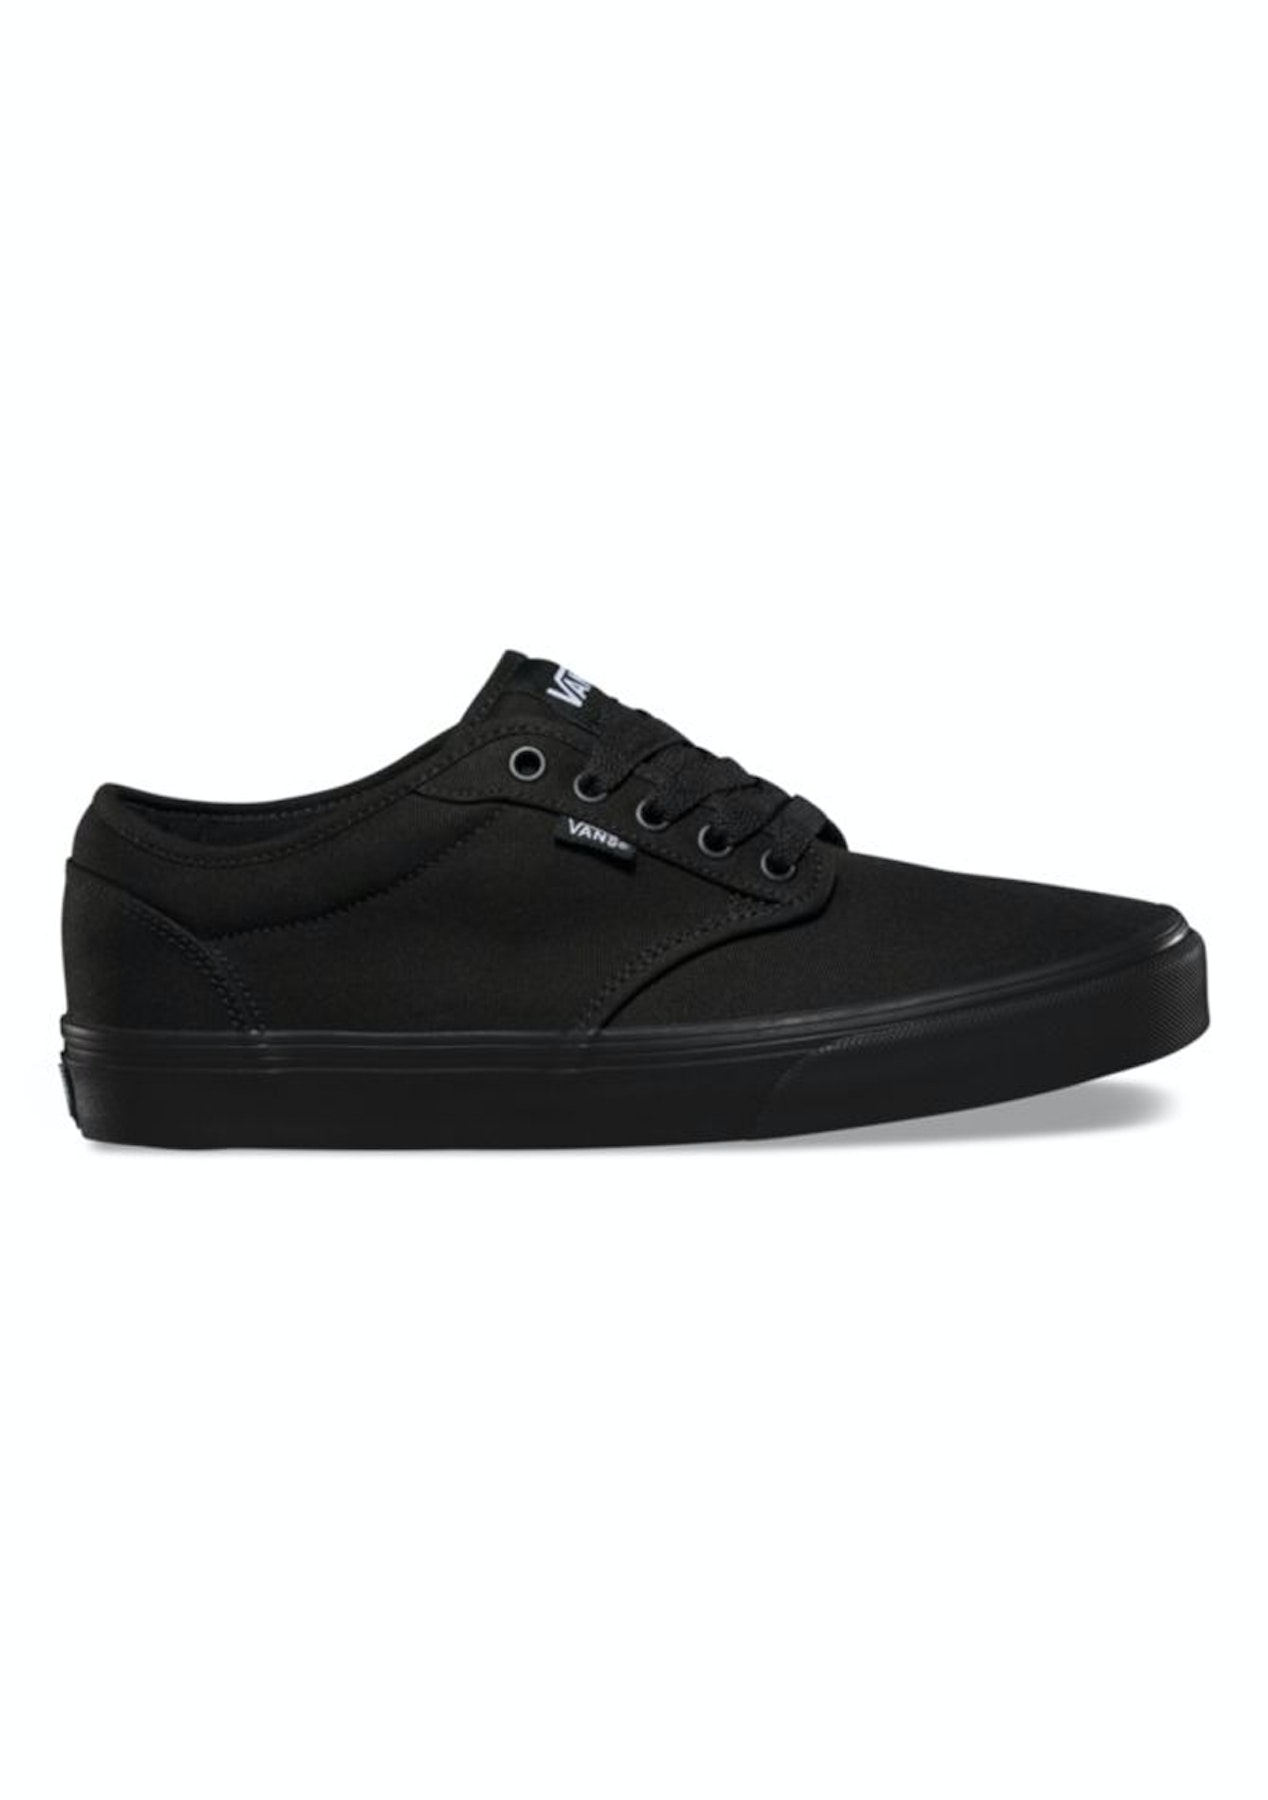 Vans - Womens Atwood Low - Canvas - Black Black - Free Shipping Street  Shoes + Slides - Onceit 0ccb80c0c